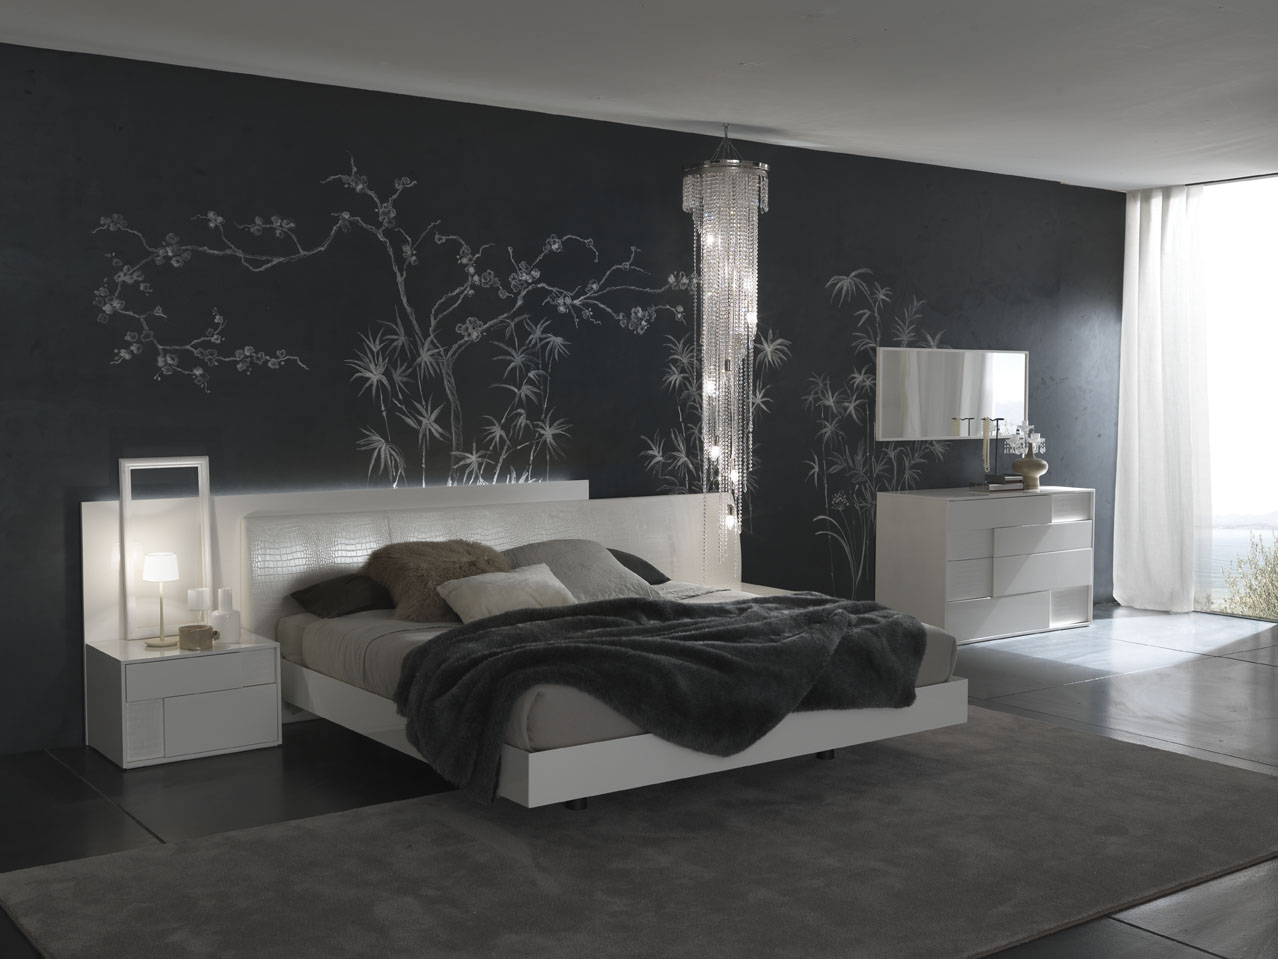 Modern Bedroom Walls Bedroom Decorating Ideas From Evinco